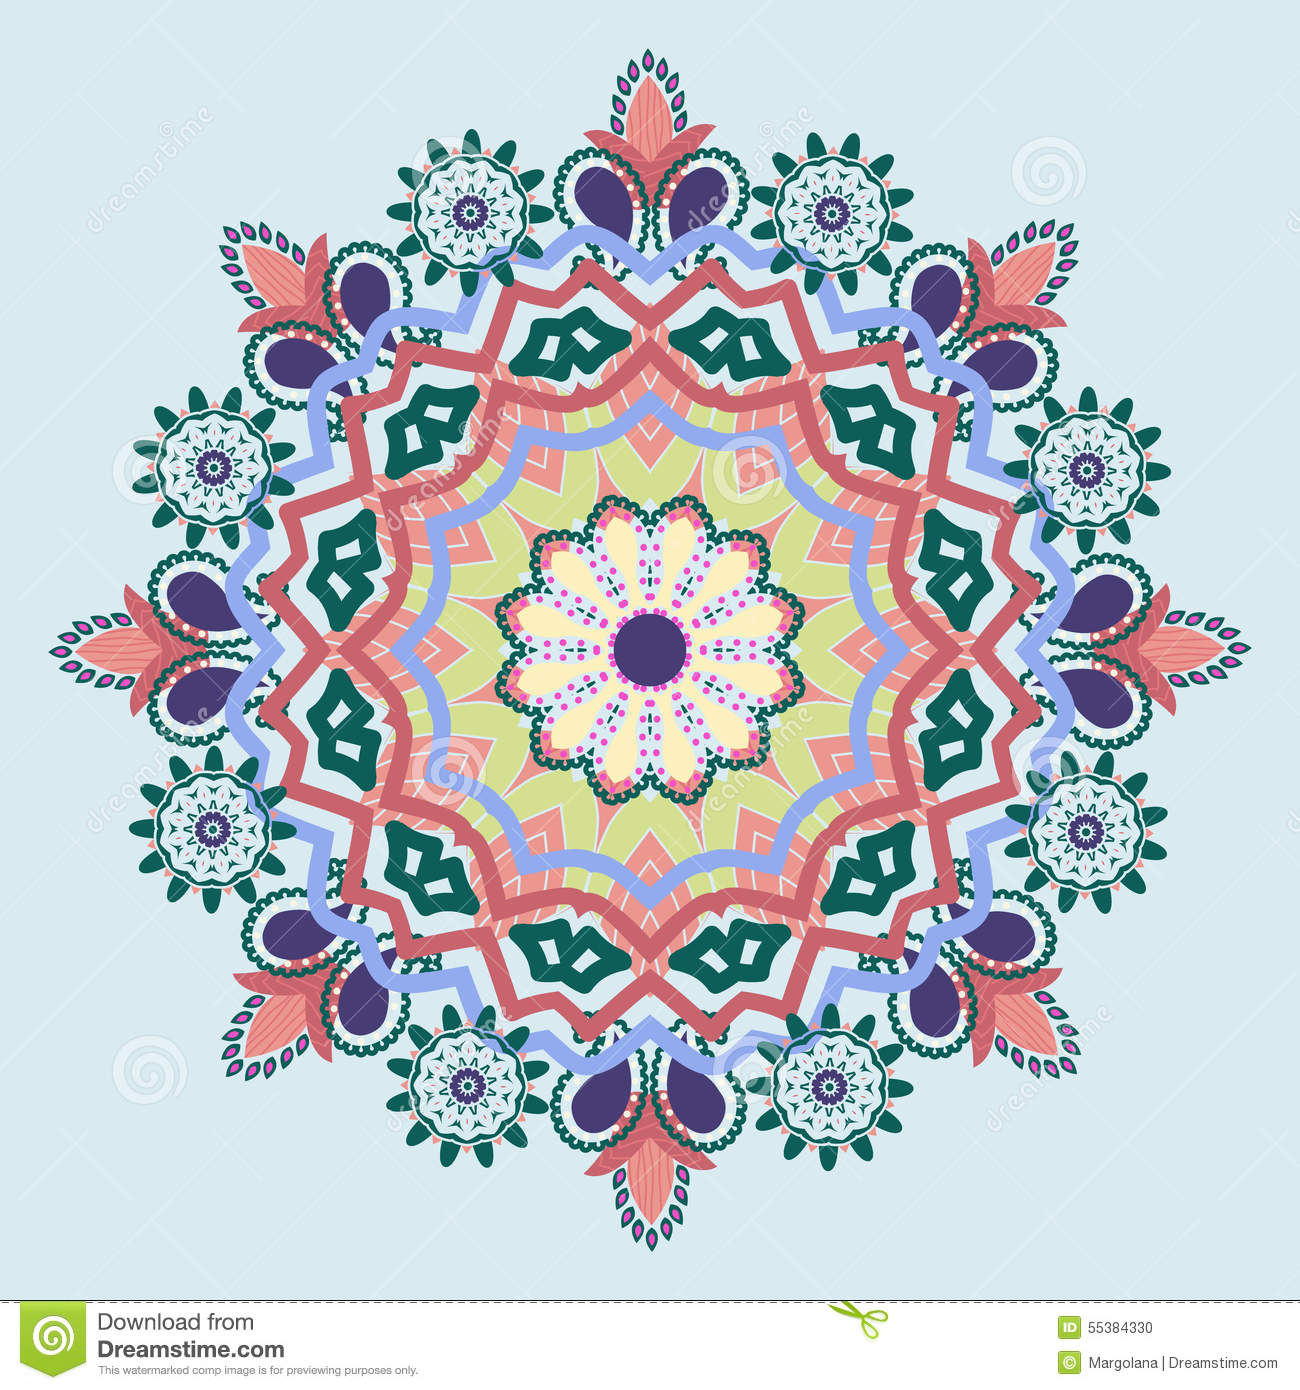 Flower coloring pages flower coloring pages 2 flower coloring pages 3 - Mandala Patterns Round Ornament Decorative Elements For